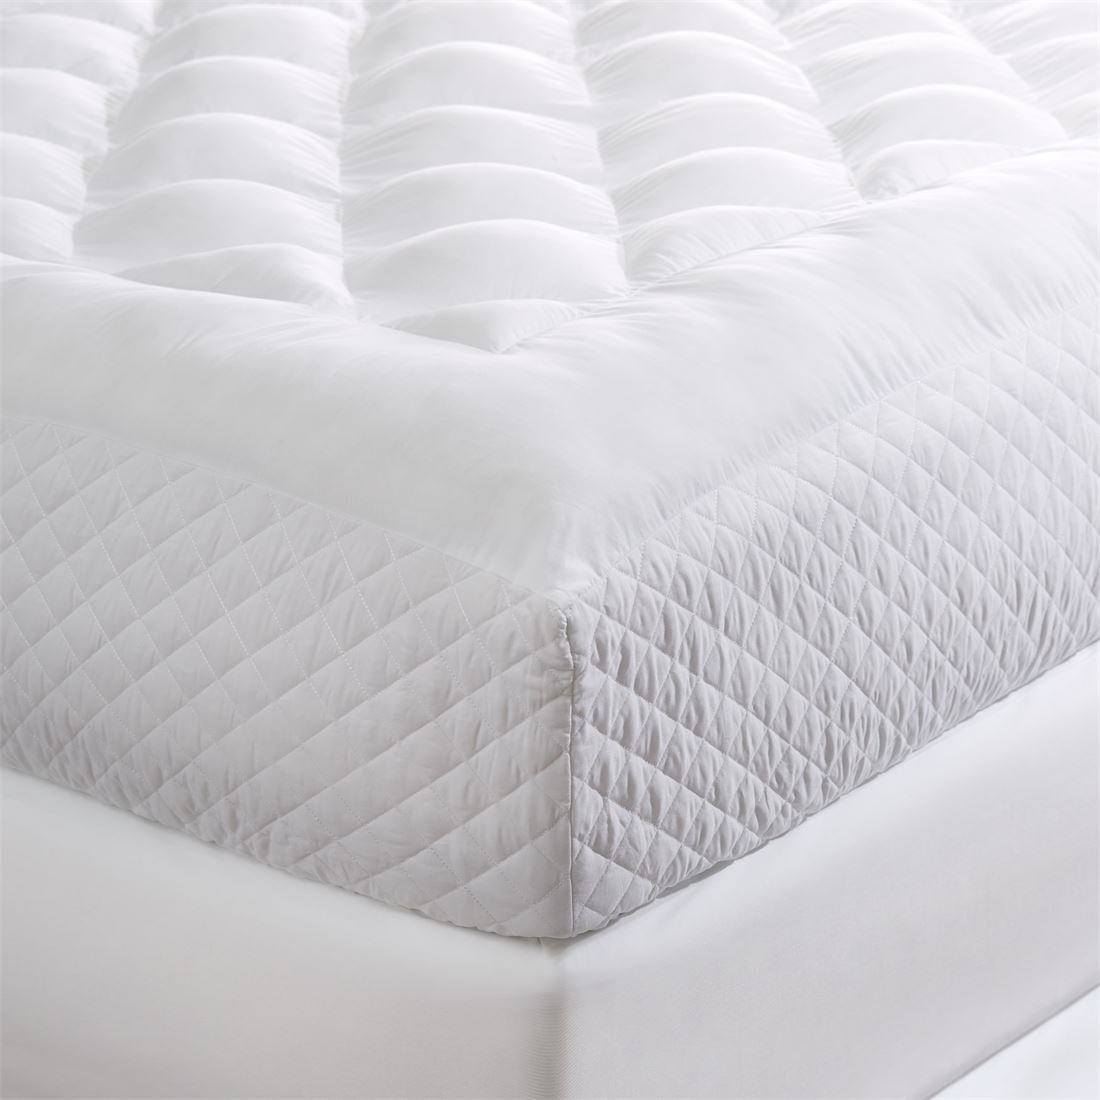 BrylaneHome Tranquil Puff Side-Wall Mattress Pad (White,King)